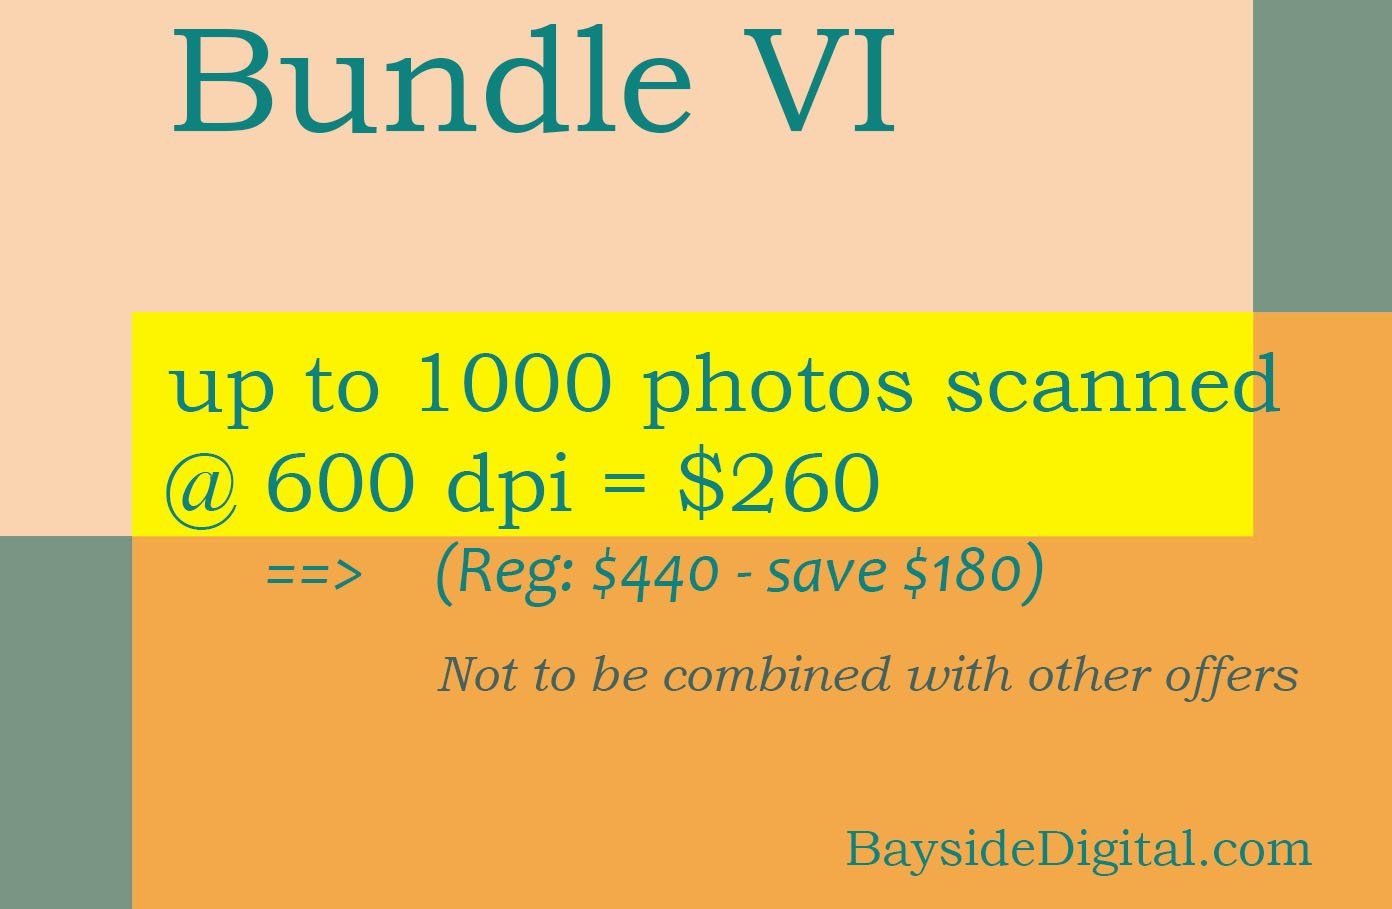 Photo digitizing scanning up to 1000 photos scanned at 600 dpi SPECIAL SALE